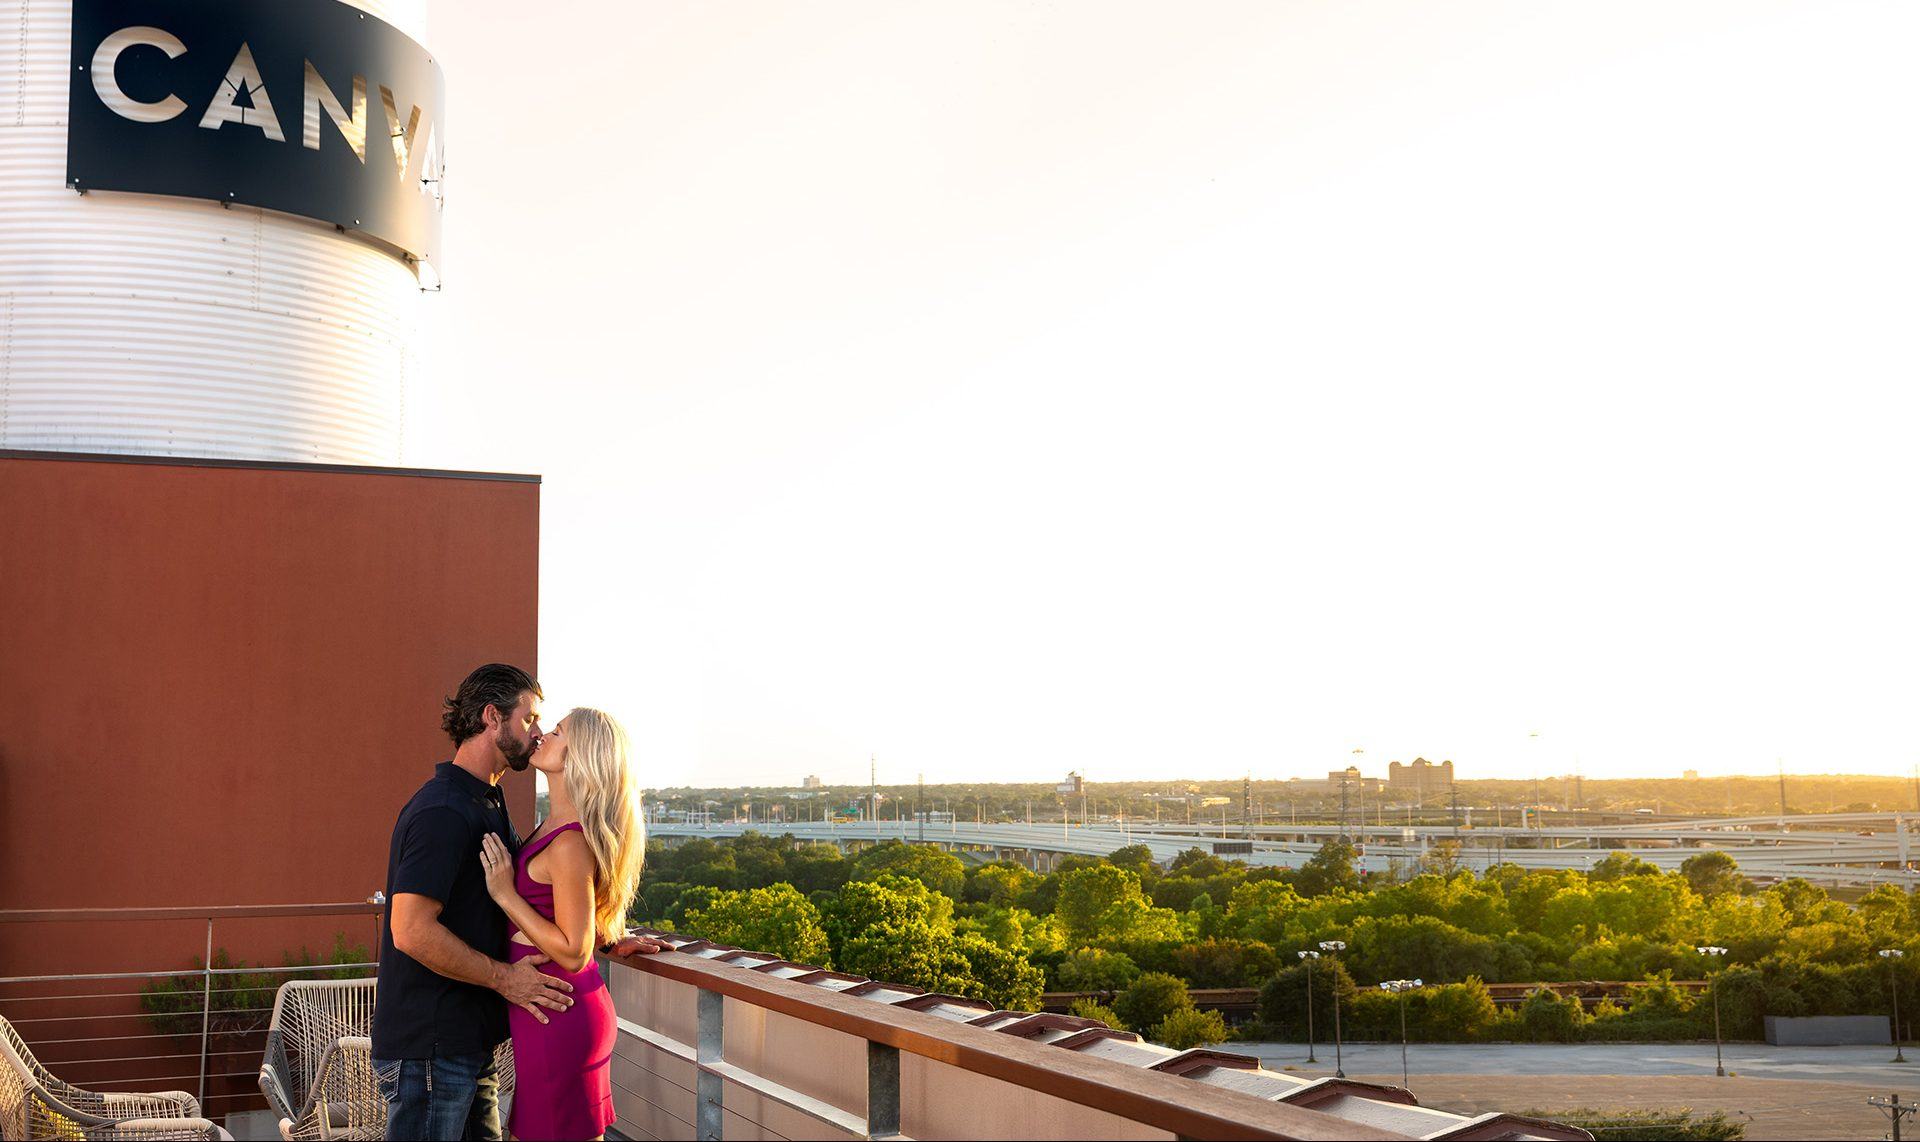 Couple enjoying Canvas rooftop with view